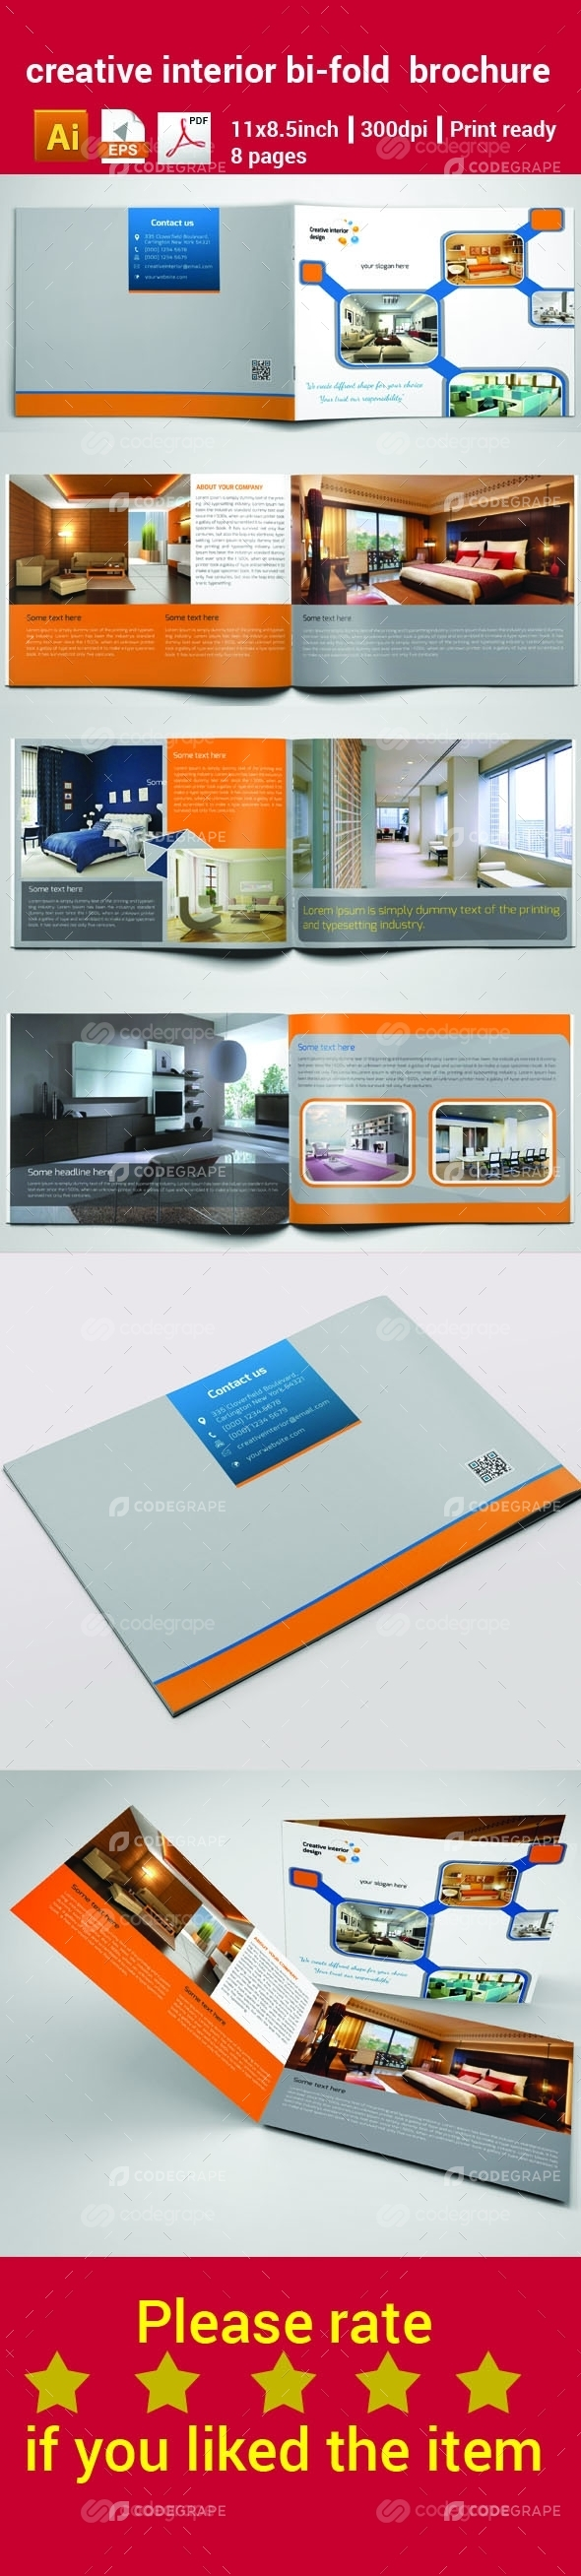 Creative Interior Bi-Fold Brochure